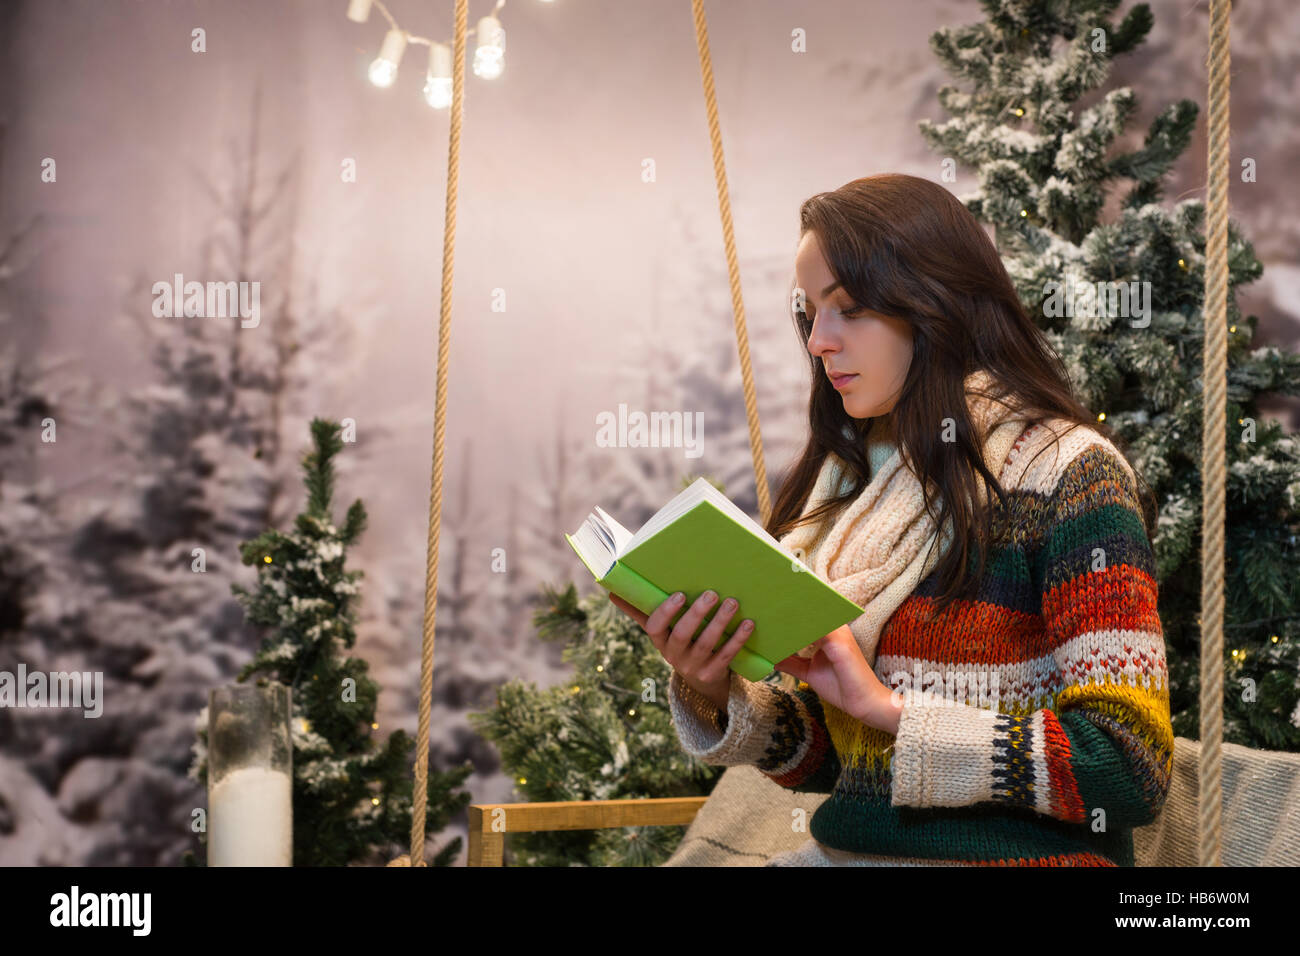 Girl reading under tree stock photos girl reading under tree stock romantic young woman reading a book while sitting on a swing with a blanket under the sciox Gallery